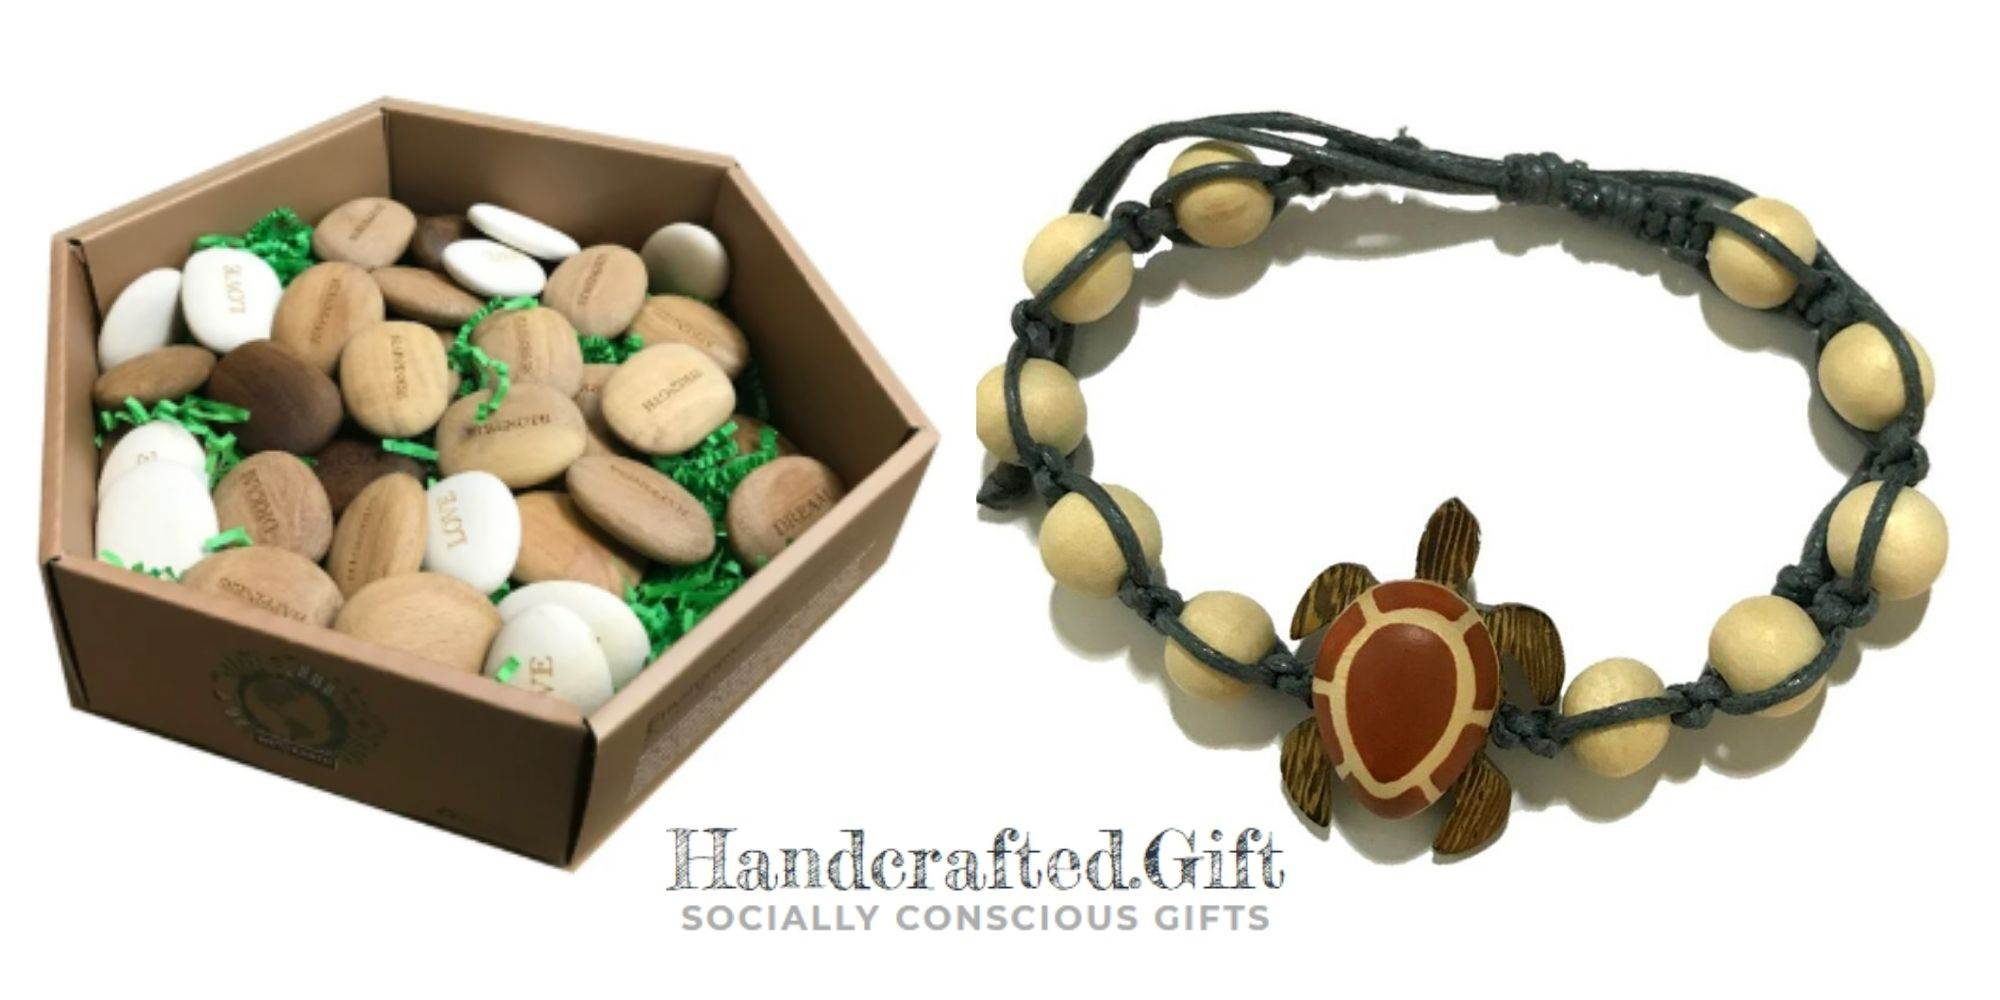 Handcrafted Gift